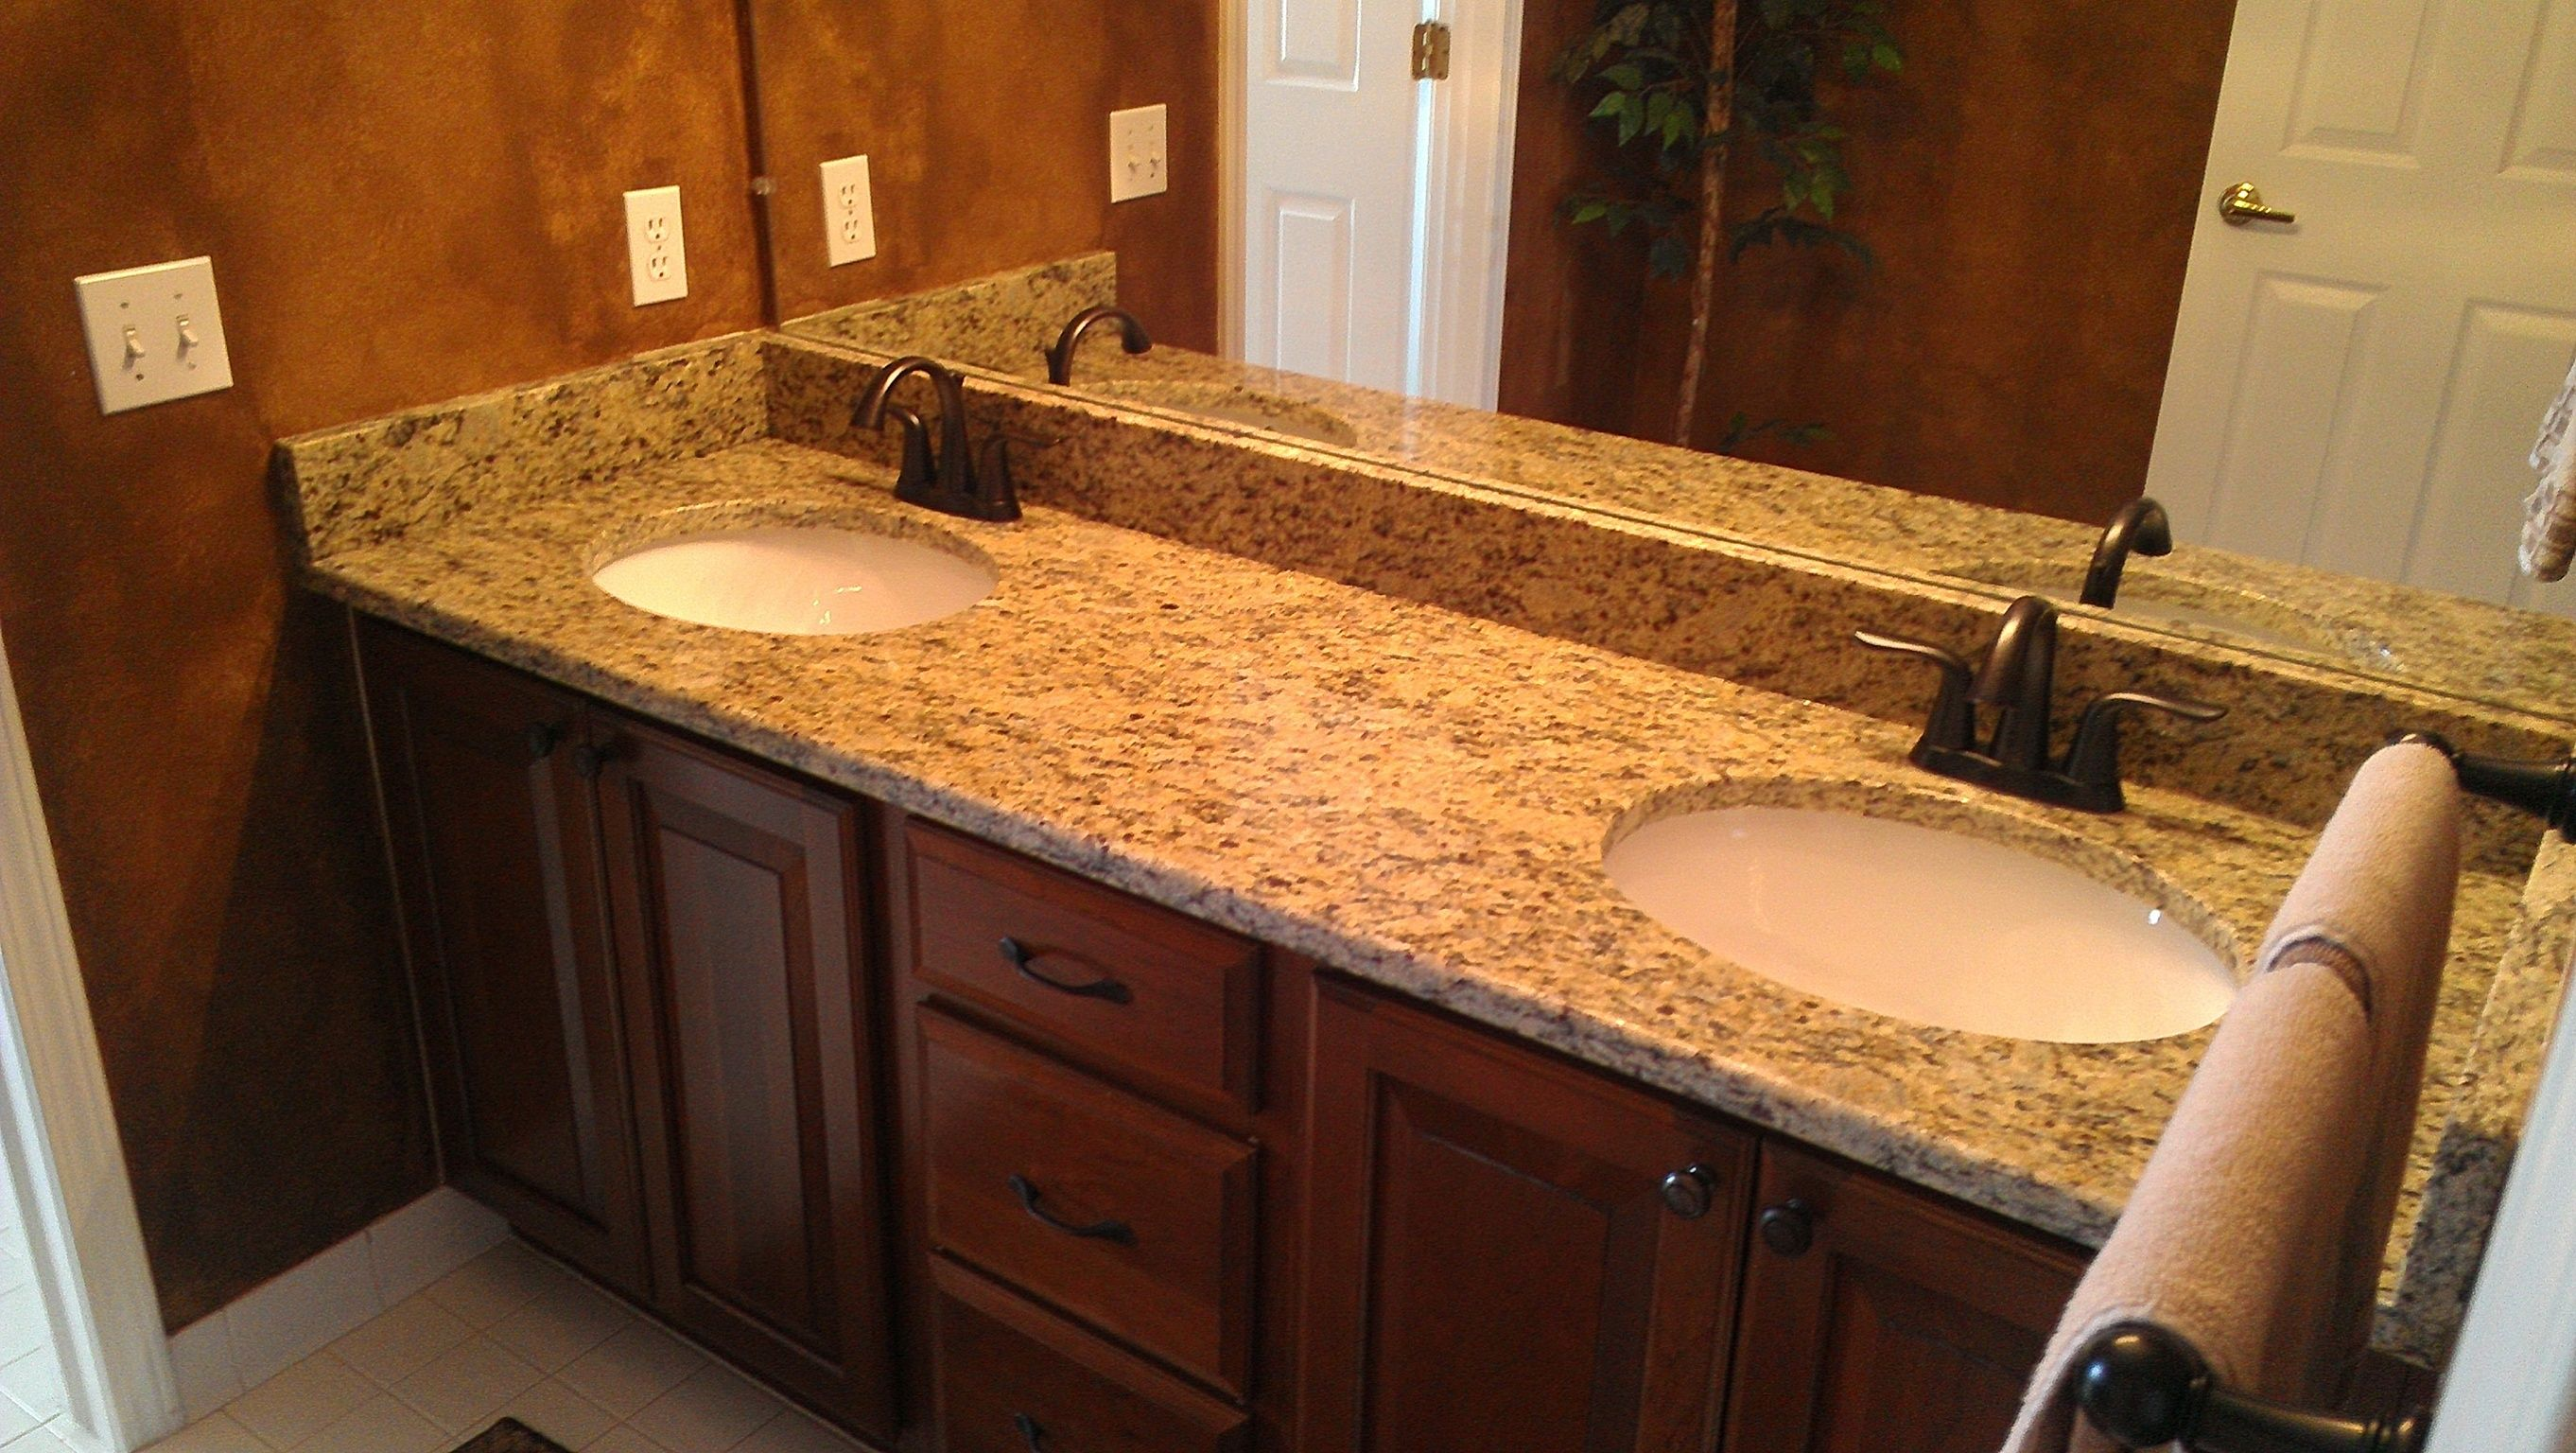 His & Her Sinks! Another must-have quality among home ...